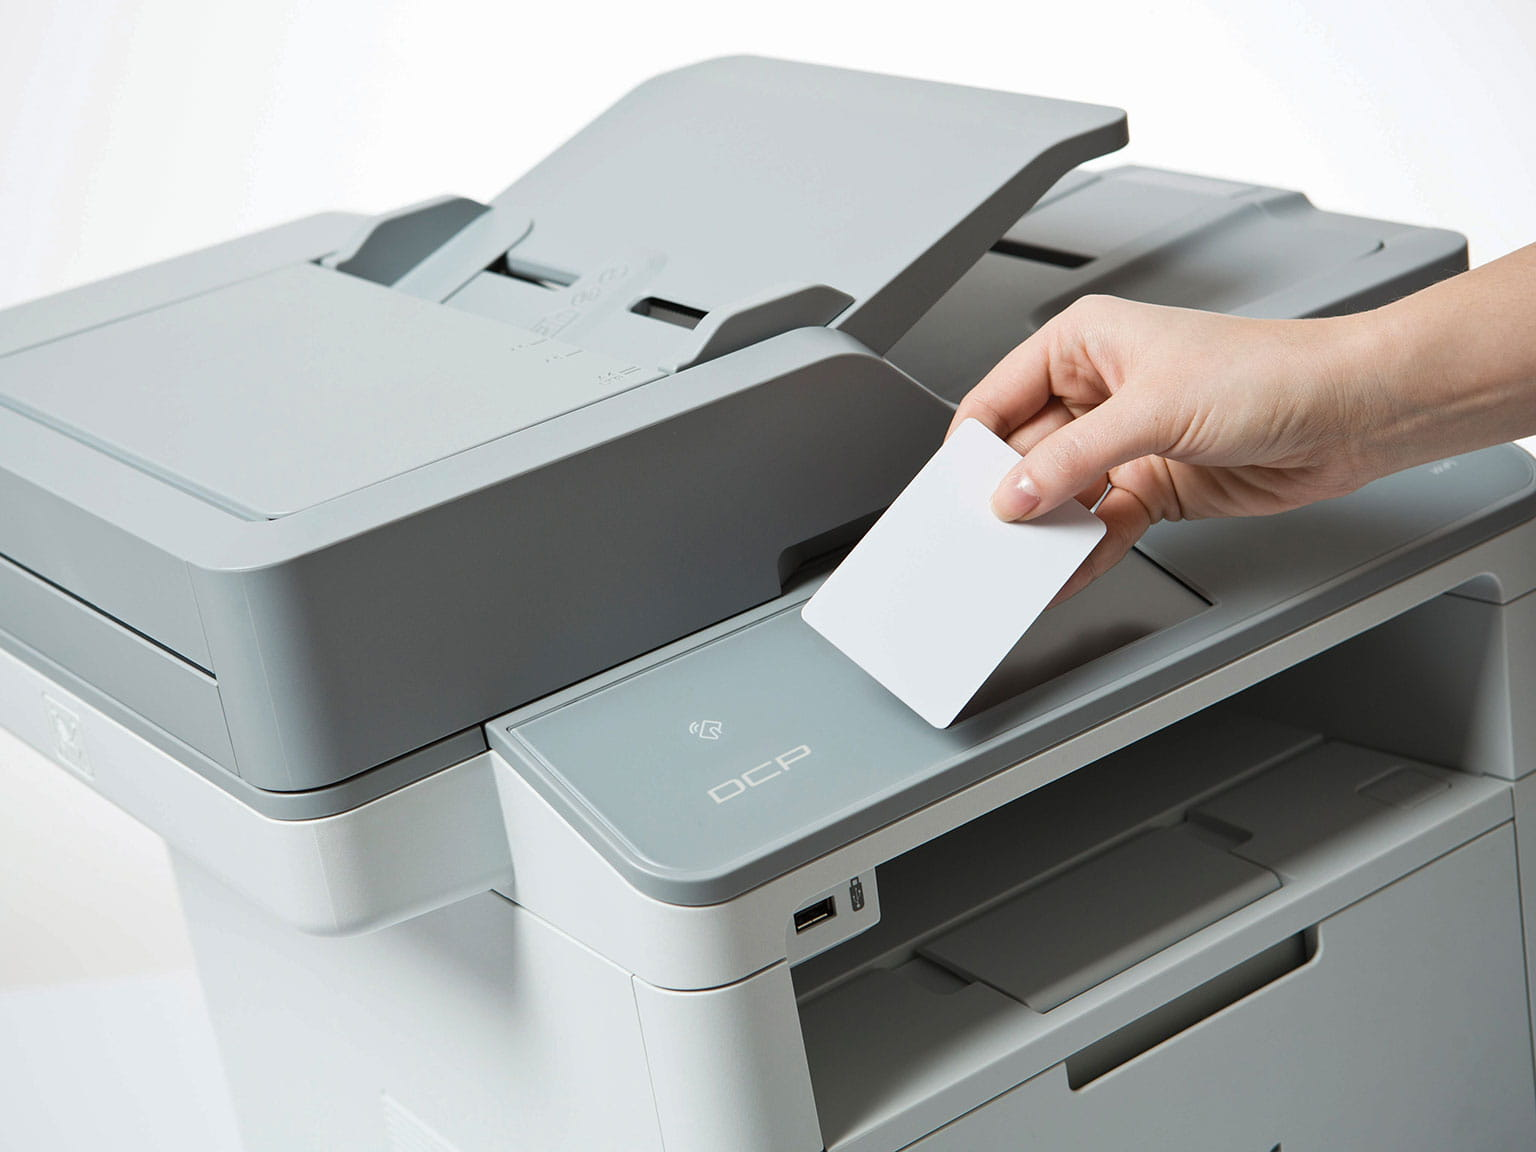 Person using a printer with an ID card